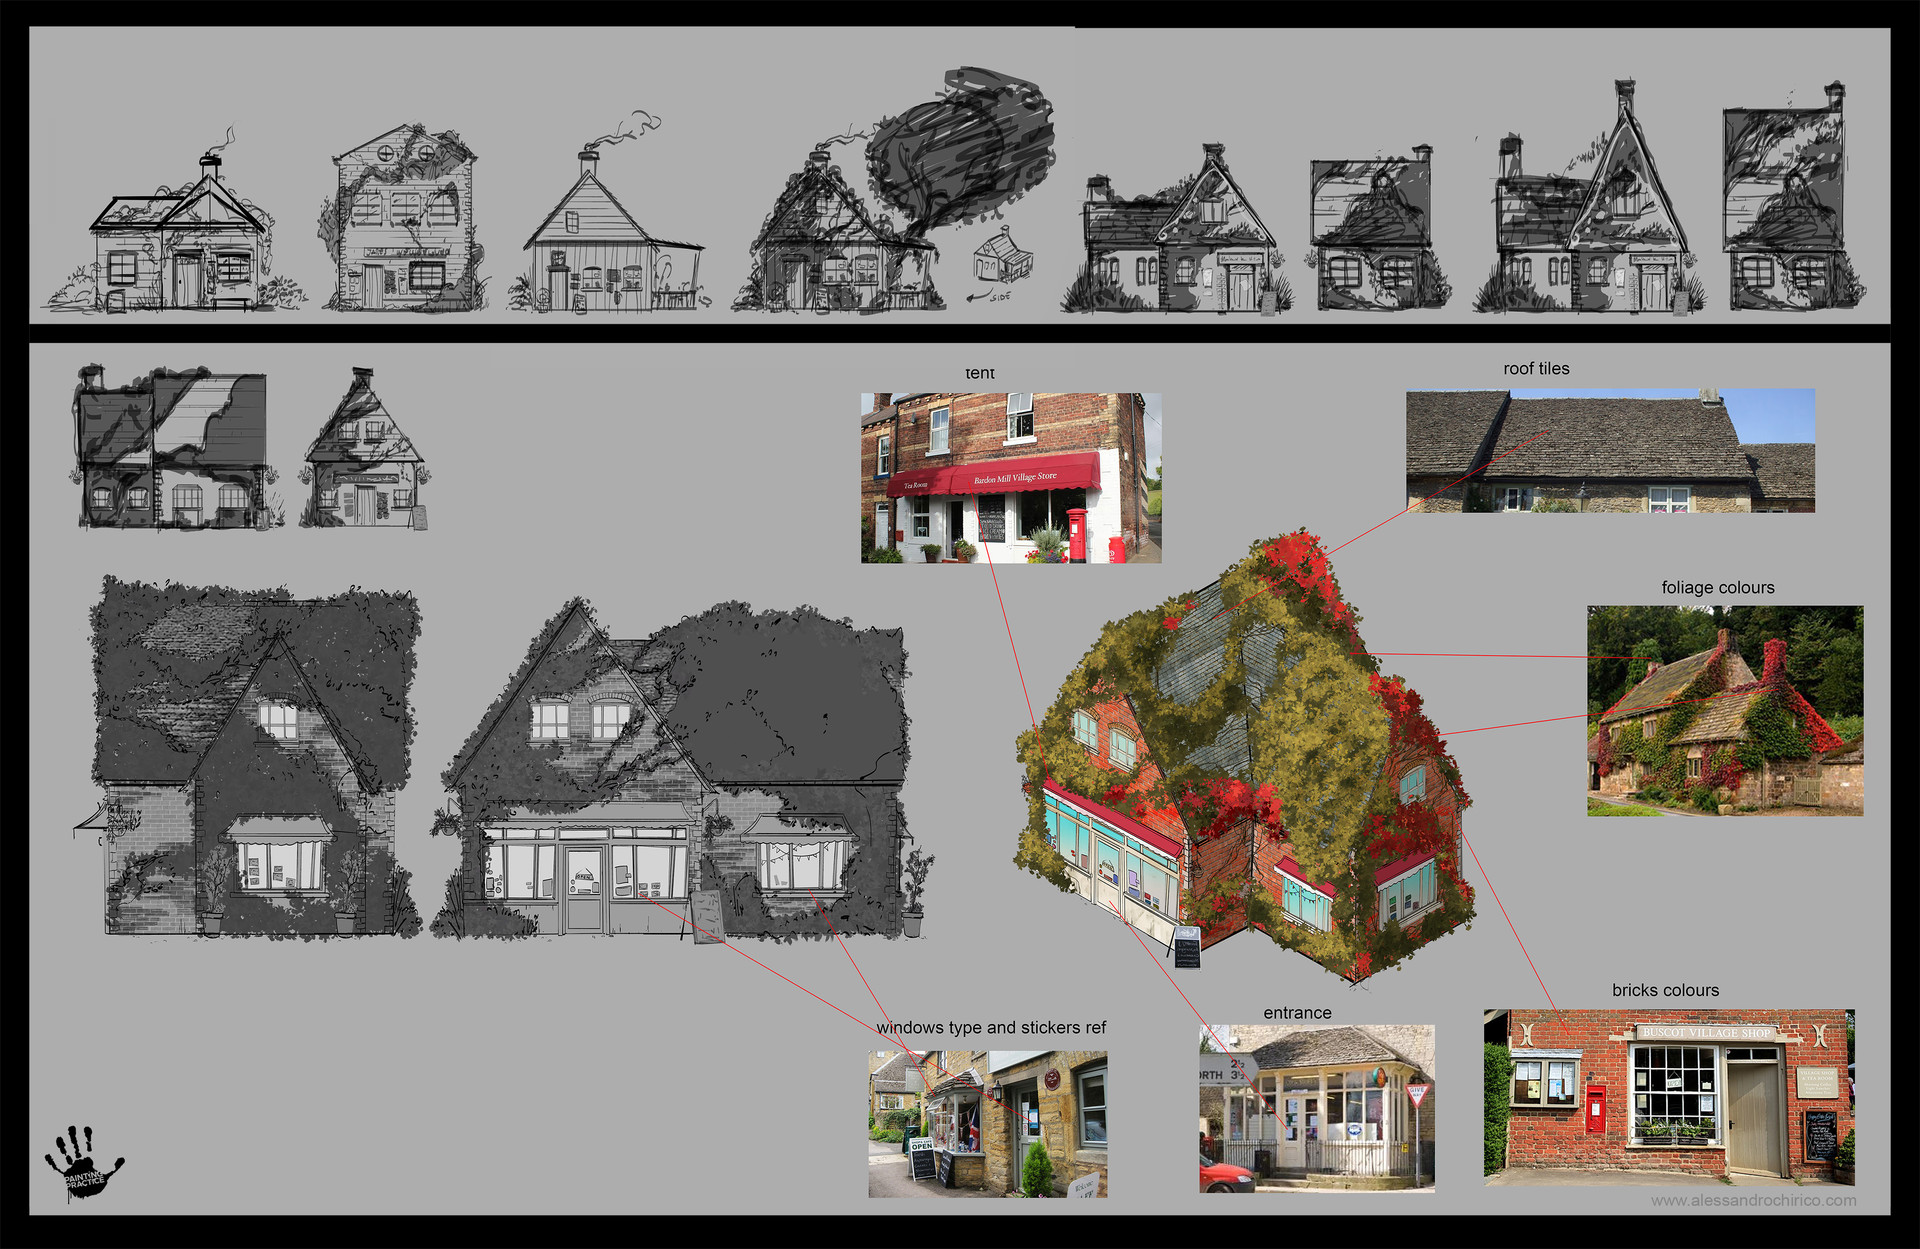 Layouts and final concept for the cottage.